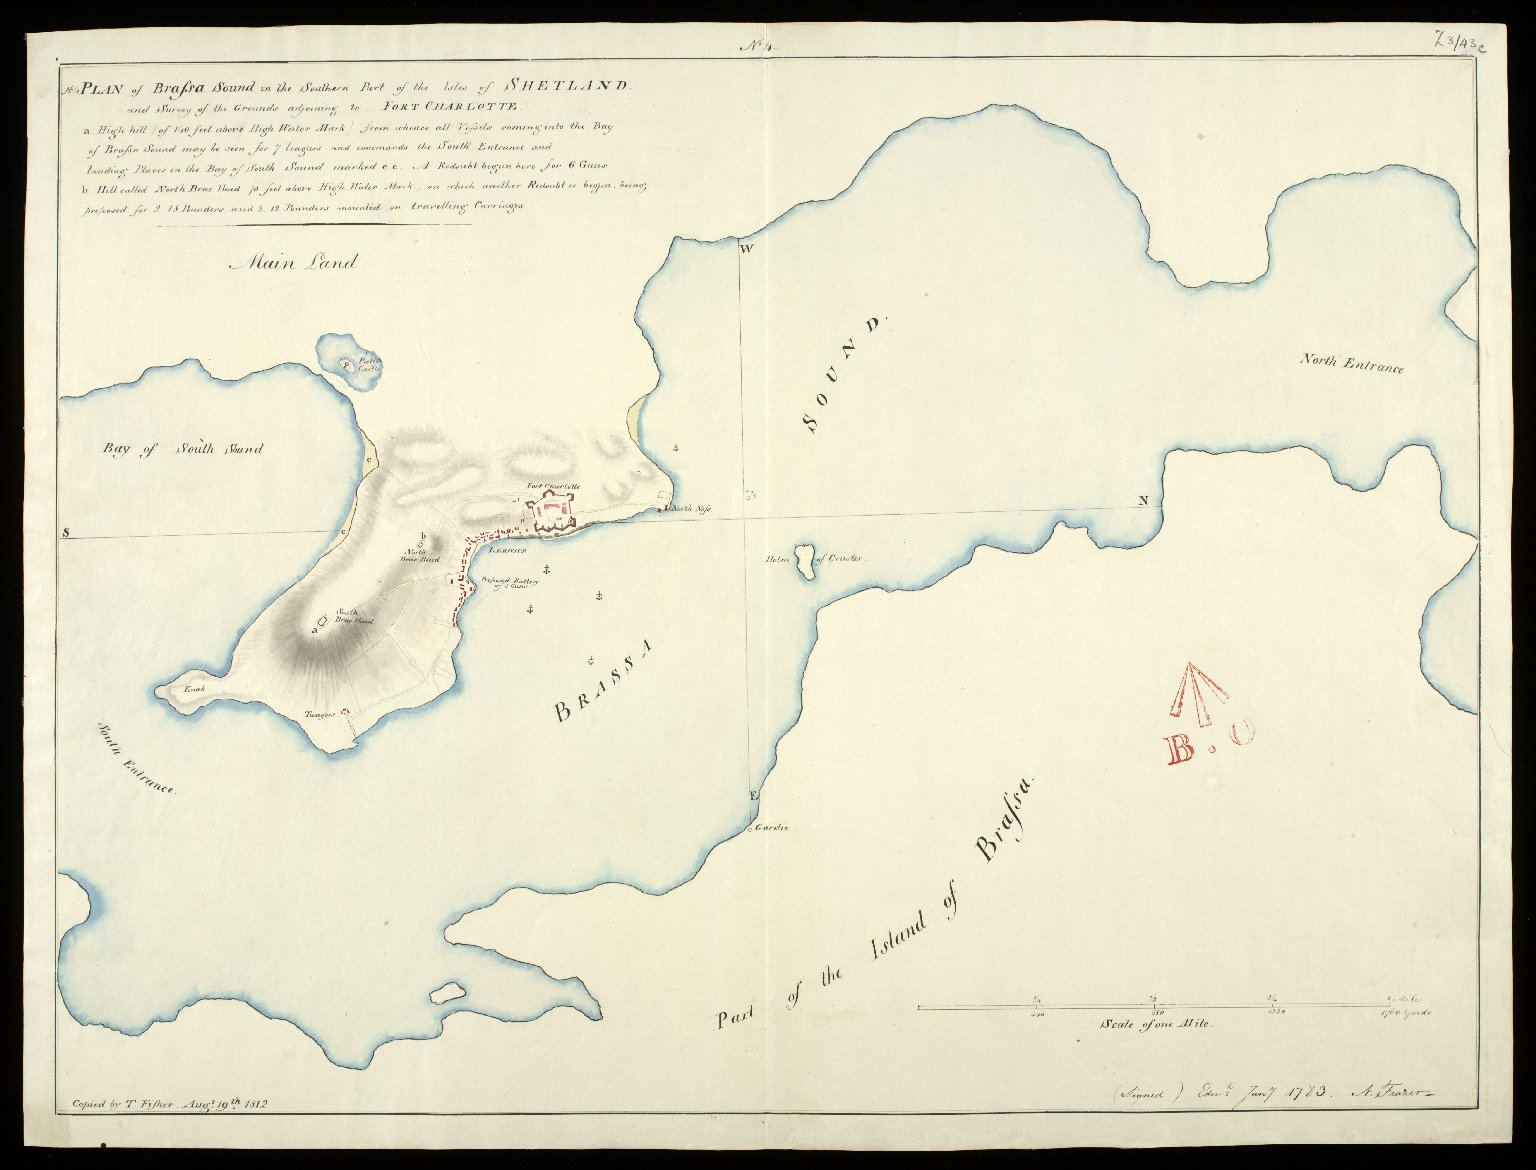 Plan of Brassa-Sound [i.e. Bressay Sound] in the southern part of the Isles of Shetland : and survey of the grounds adjoining to Fort Charlotte, No.4 [1783] [copy] [1 of 1]